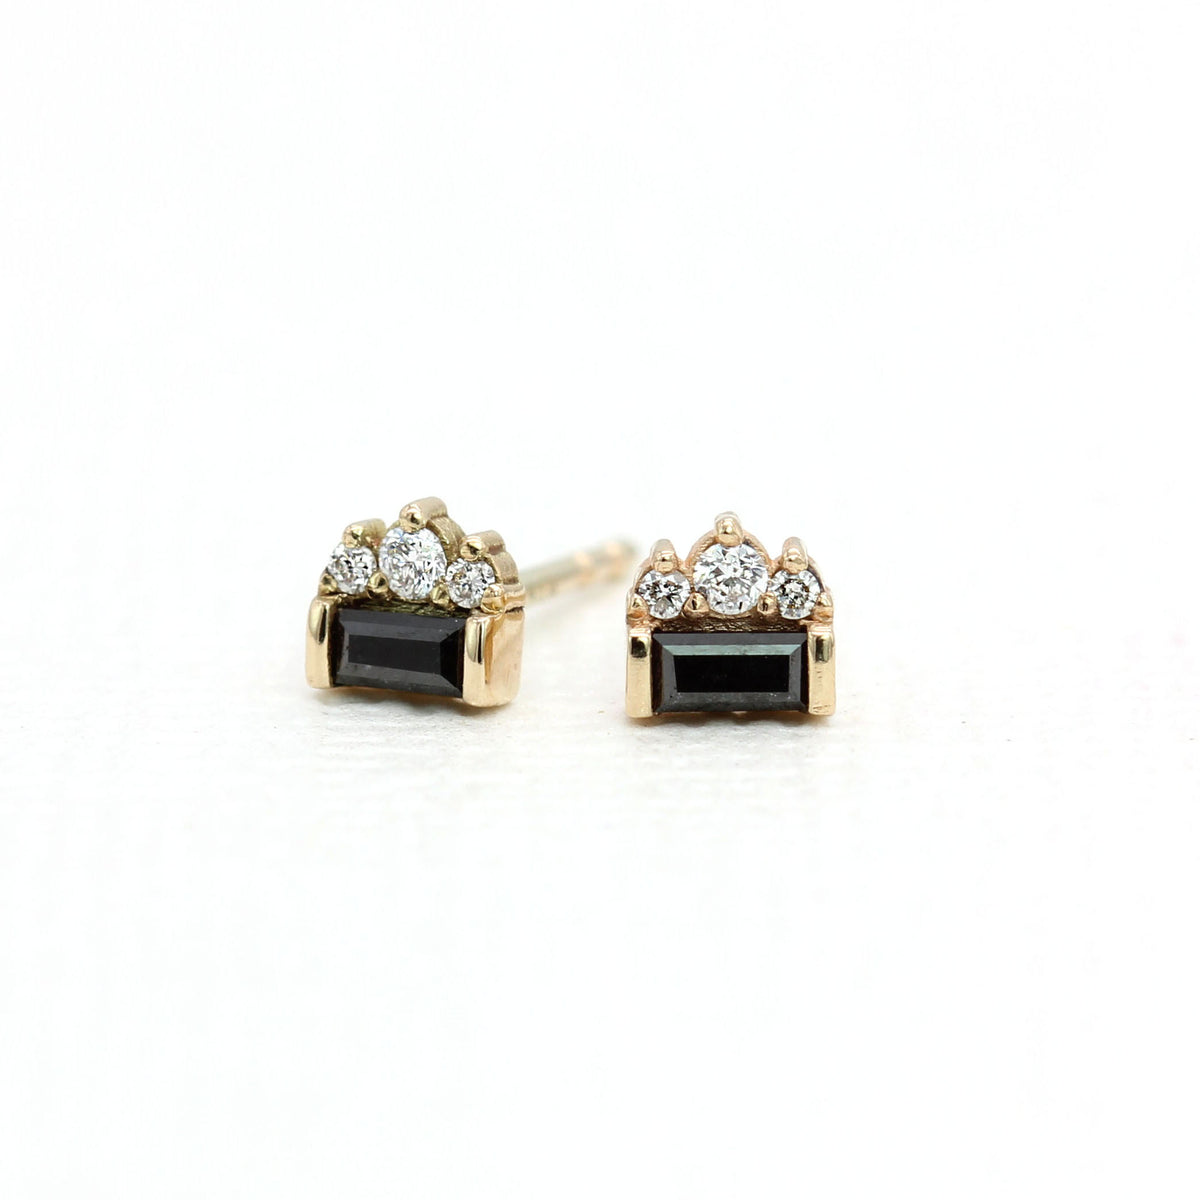 Black Tie Earrings - Baguette Black Diamond & White Diamonds - Yellow Gold